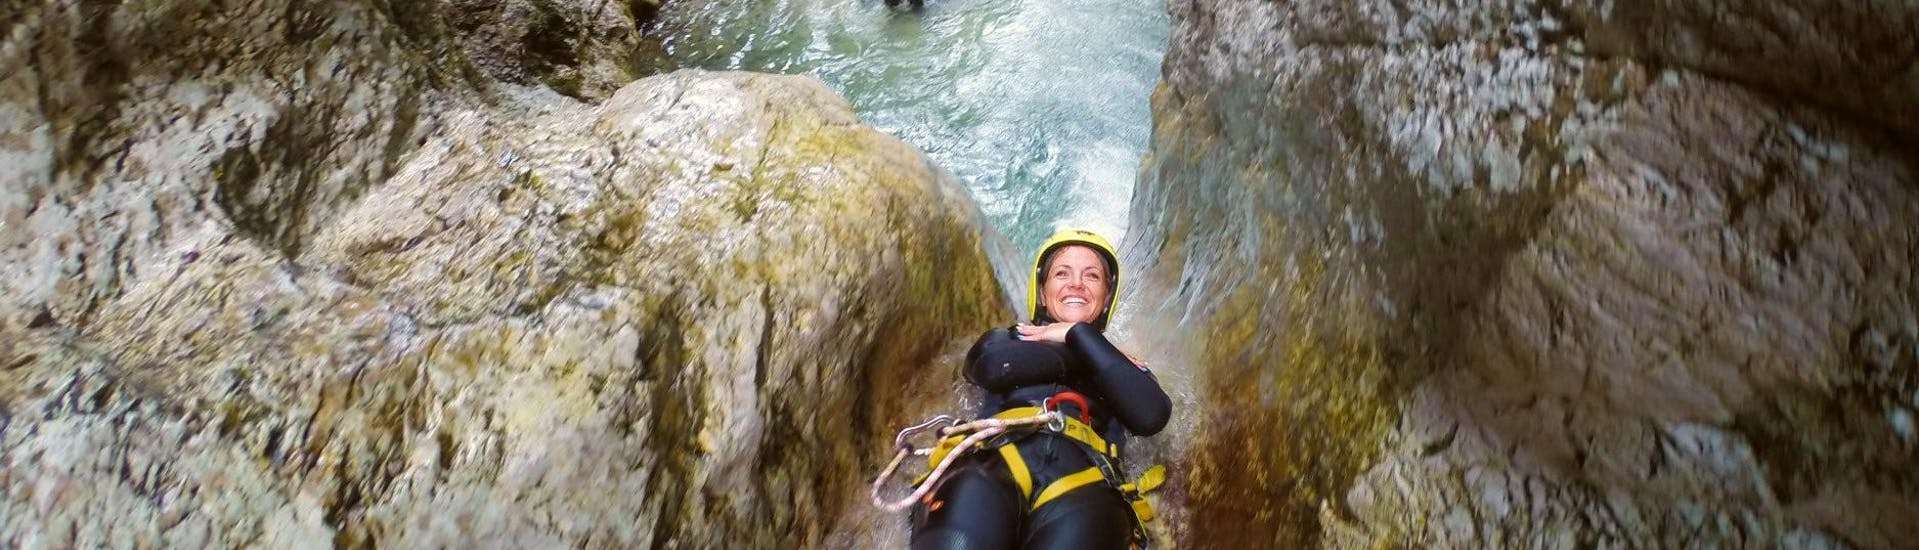 canyoning-in-the-susec-gorge-for-groups-from-8-people-top-rafting-hero